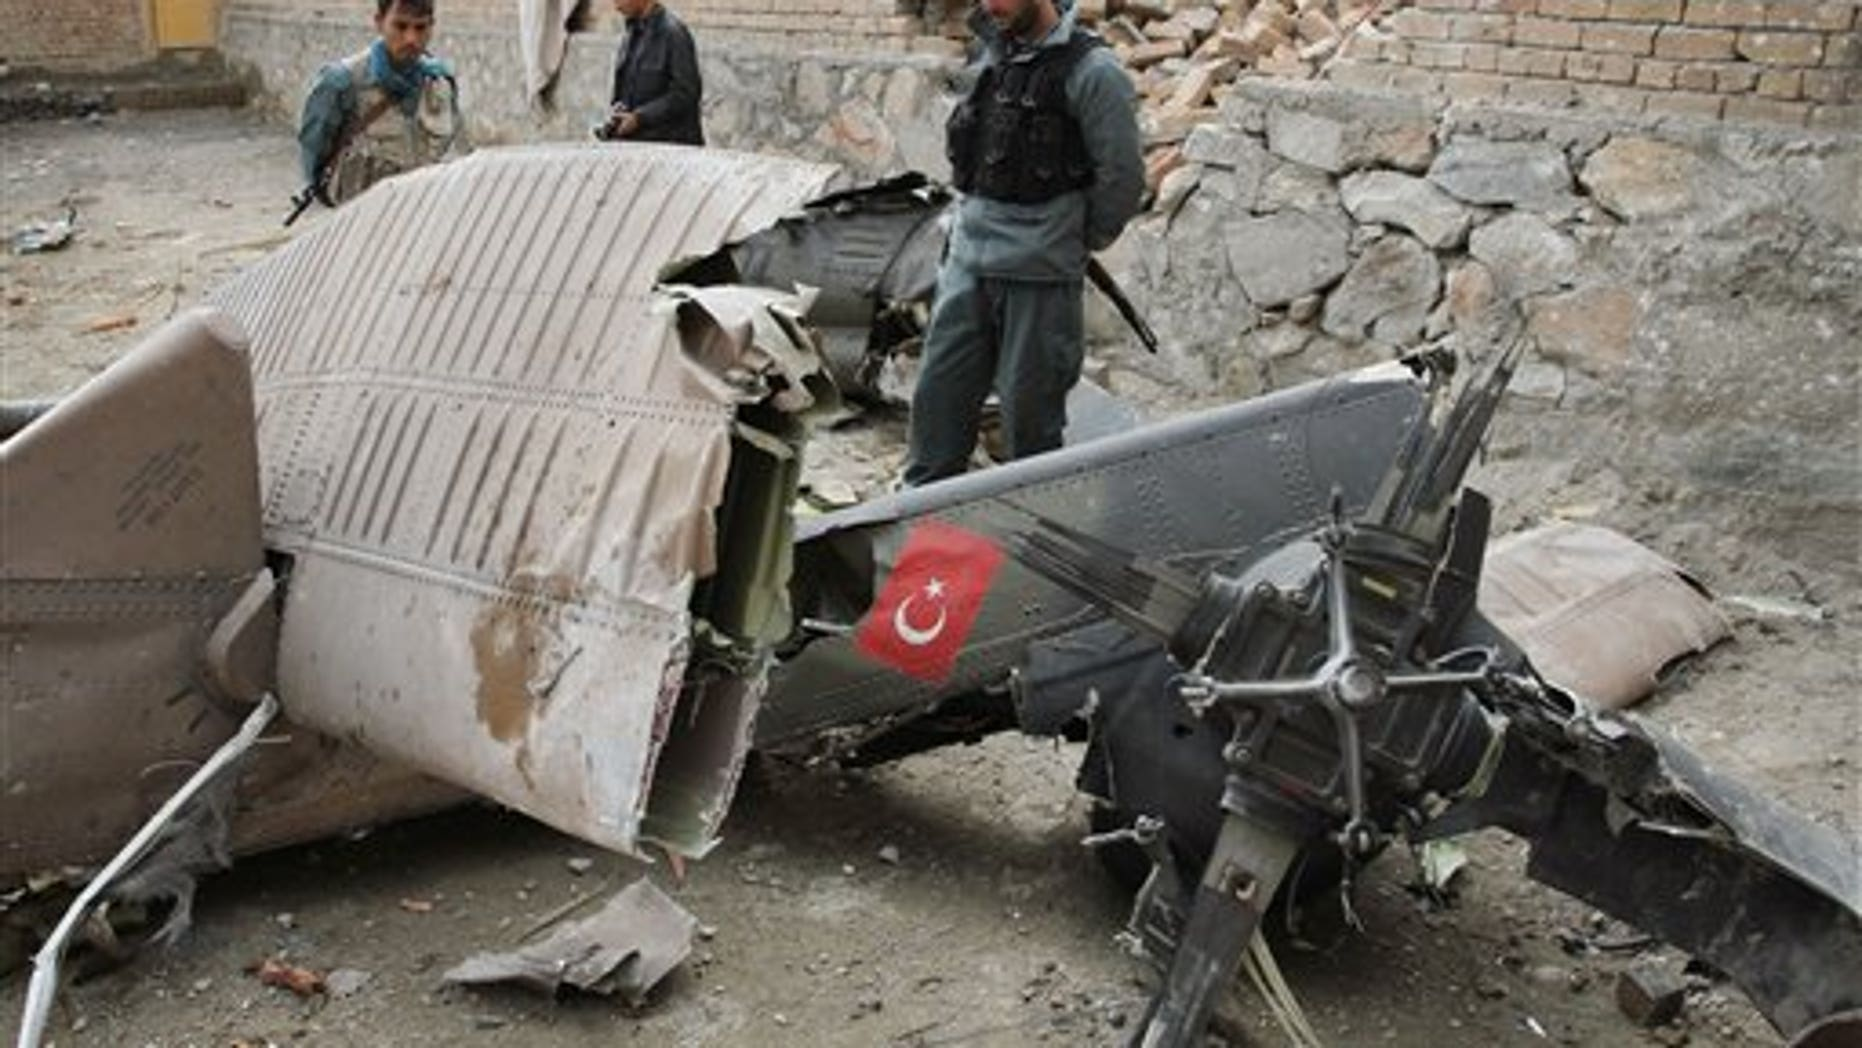 March 16, 2012: An Afghan policemen looks at the wreckage from a crashed Turkish helicopter on the outskirts of Kabul.